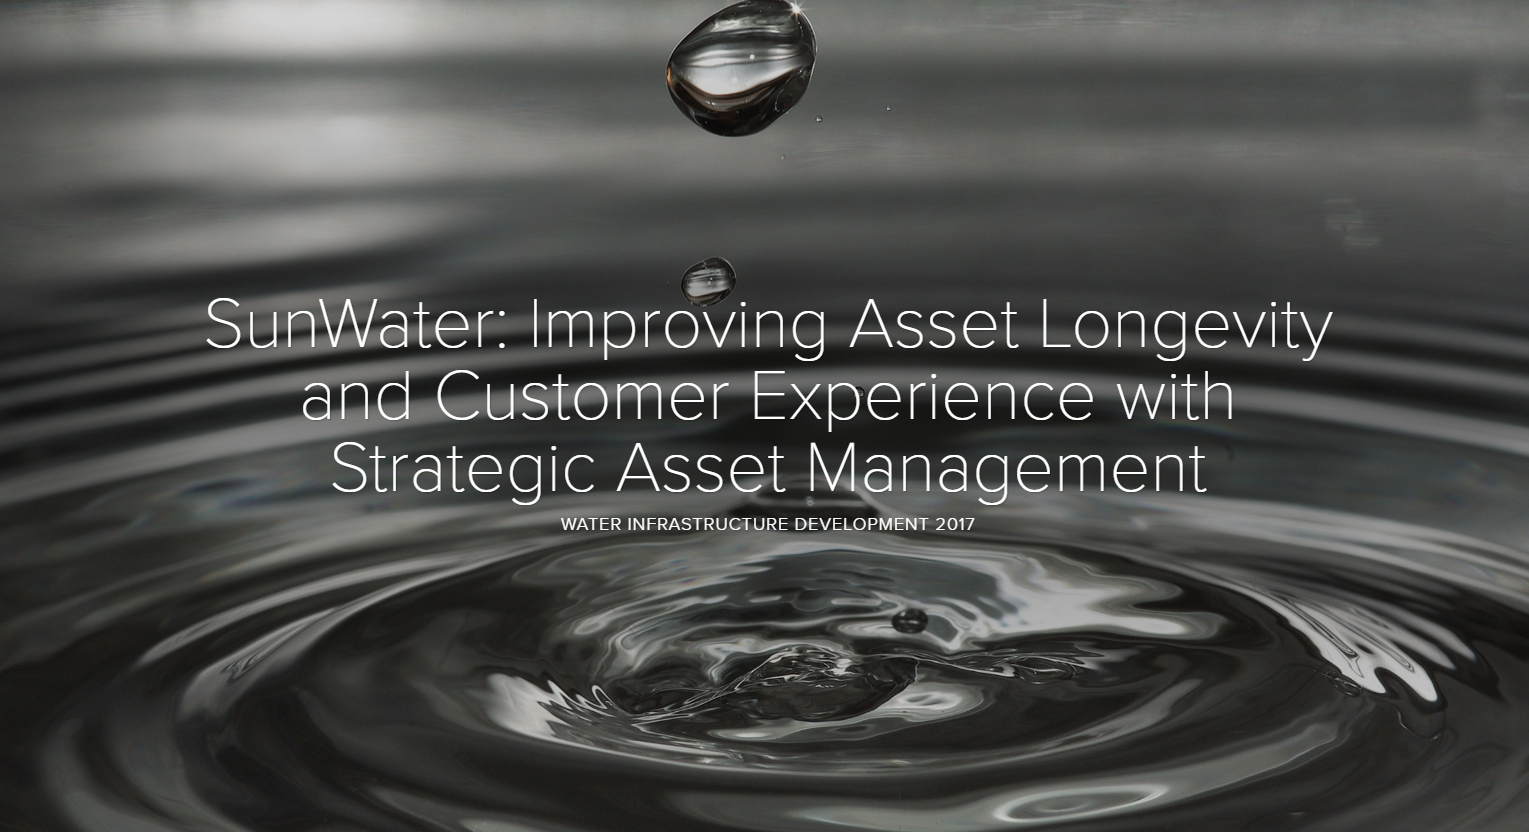 Improving Asset Longevity and Customer Experience with Strategic Asset Management